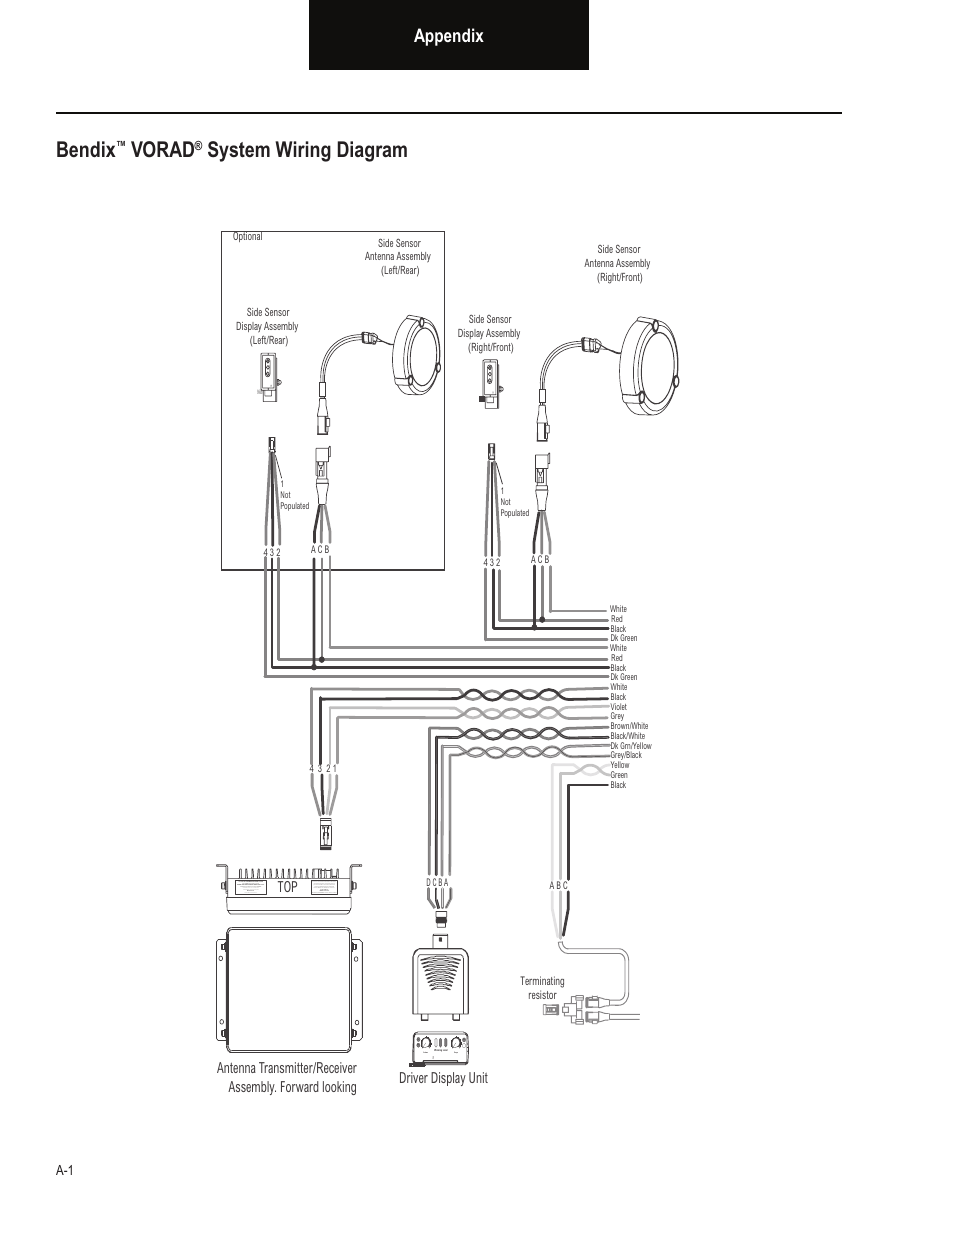 bendix, vorad, system wiring diagram bendix commercial vehicle bendix wiring diagram remote compass bendix, vorad, system wiring diagram appendix bendix commercial vehicle systems vorad evt